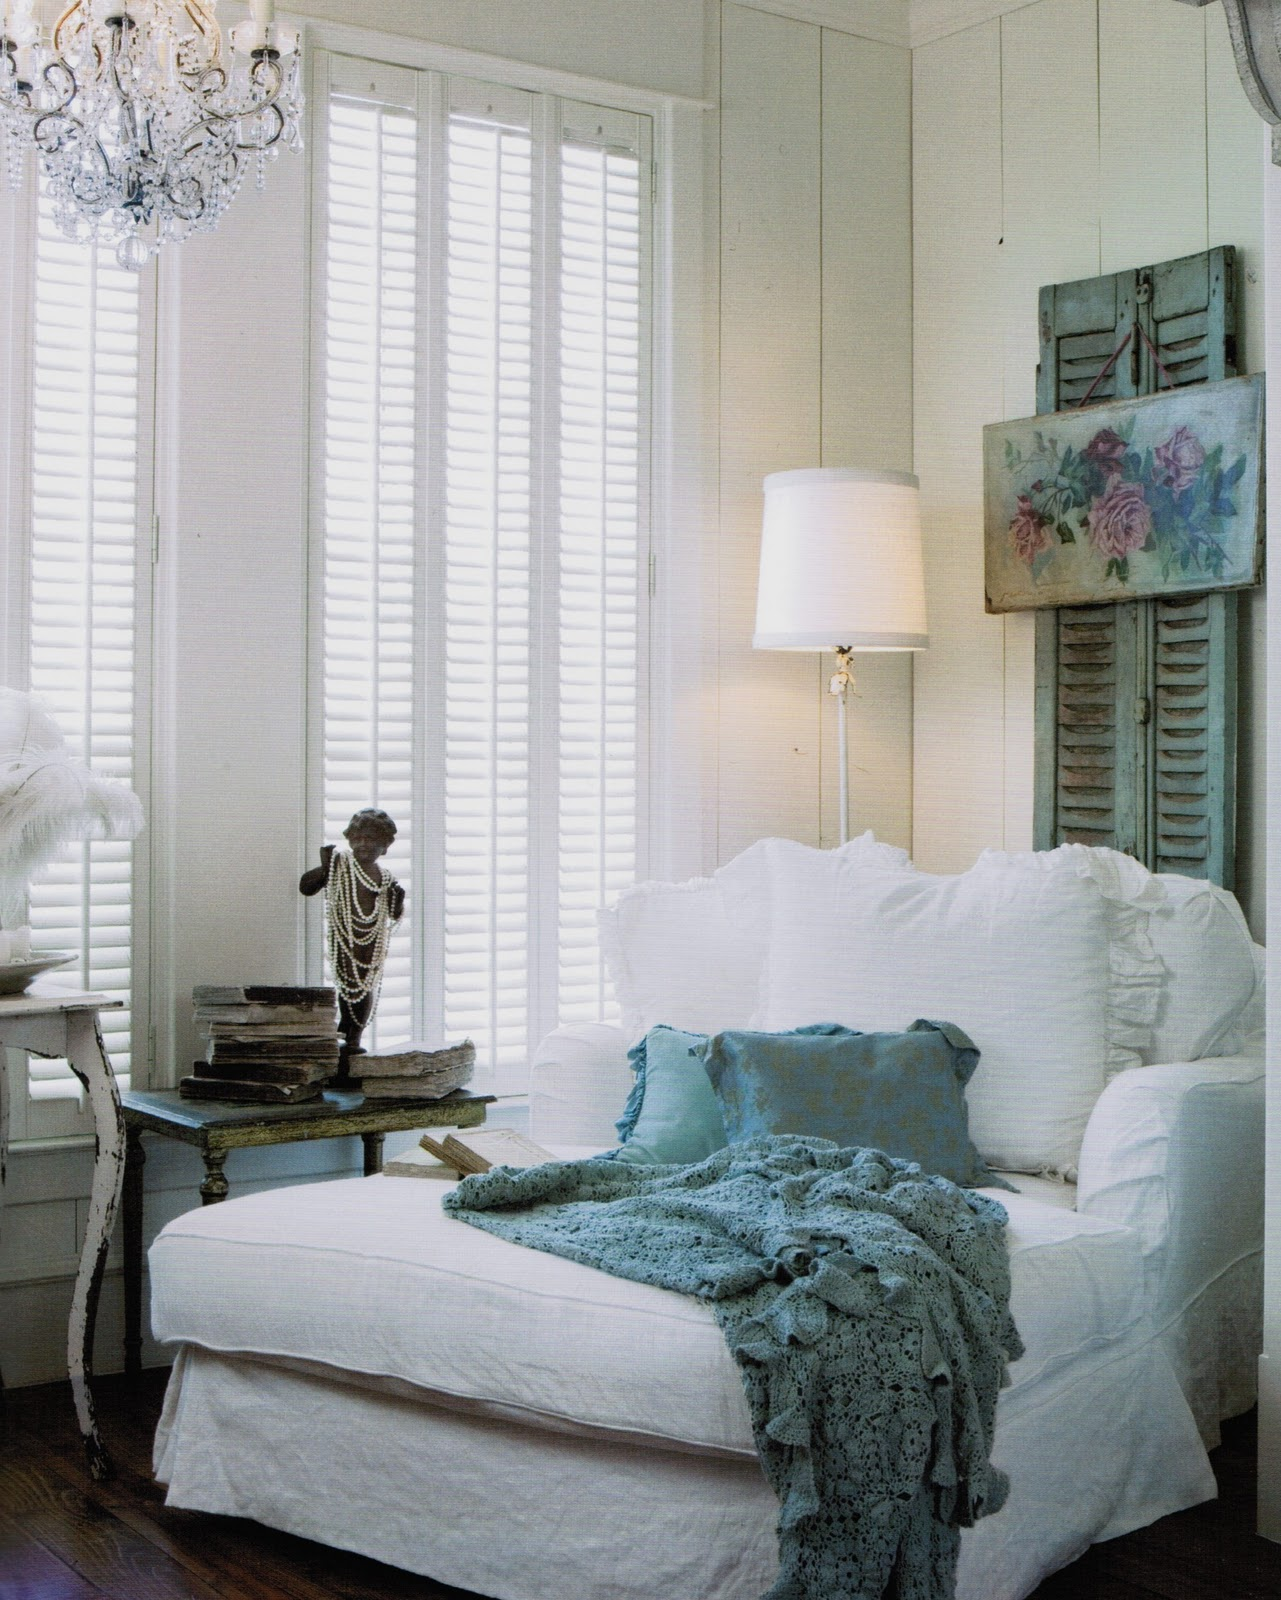 Maison Decor: French Inspired Home Book Giveaway. The